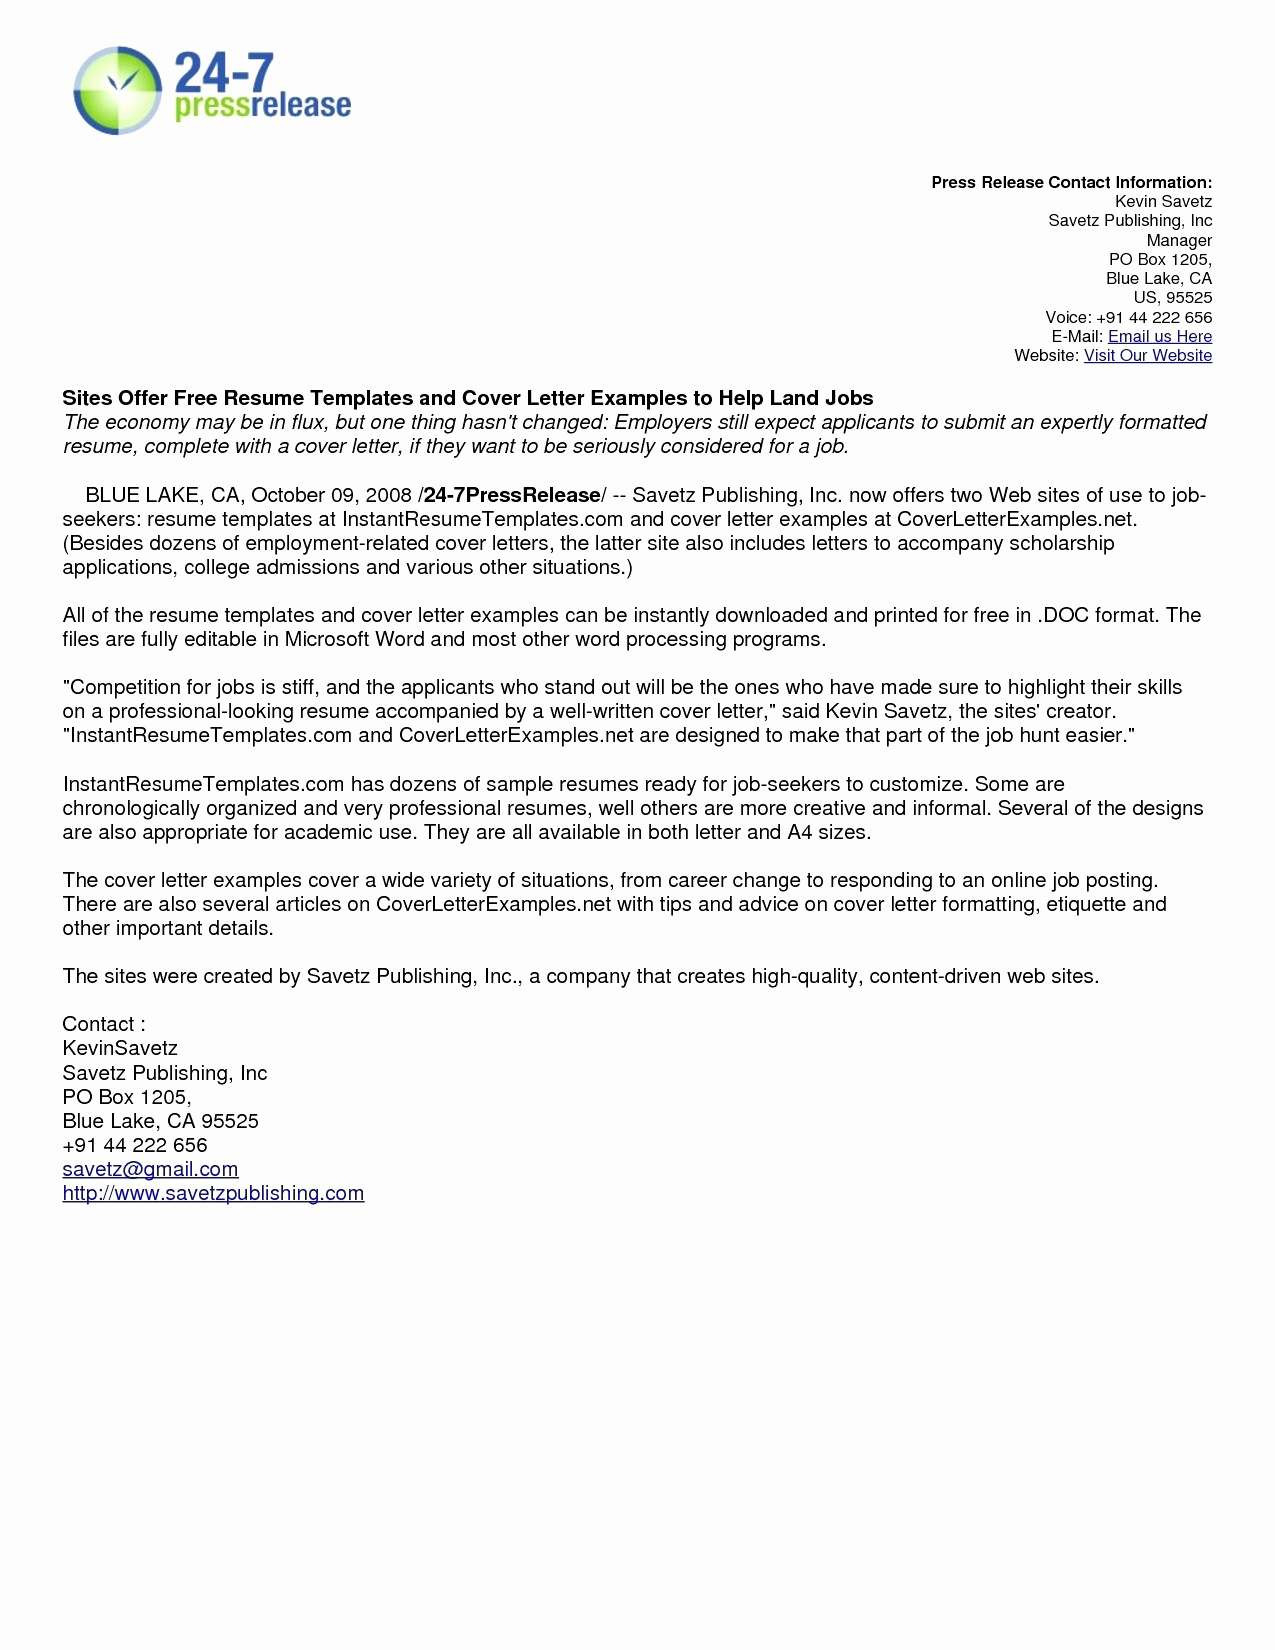 Email Letter Of Recommendation Template - Panies that Do Resumes Inspirational Resume Logo Lovely Free